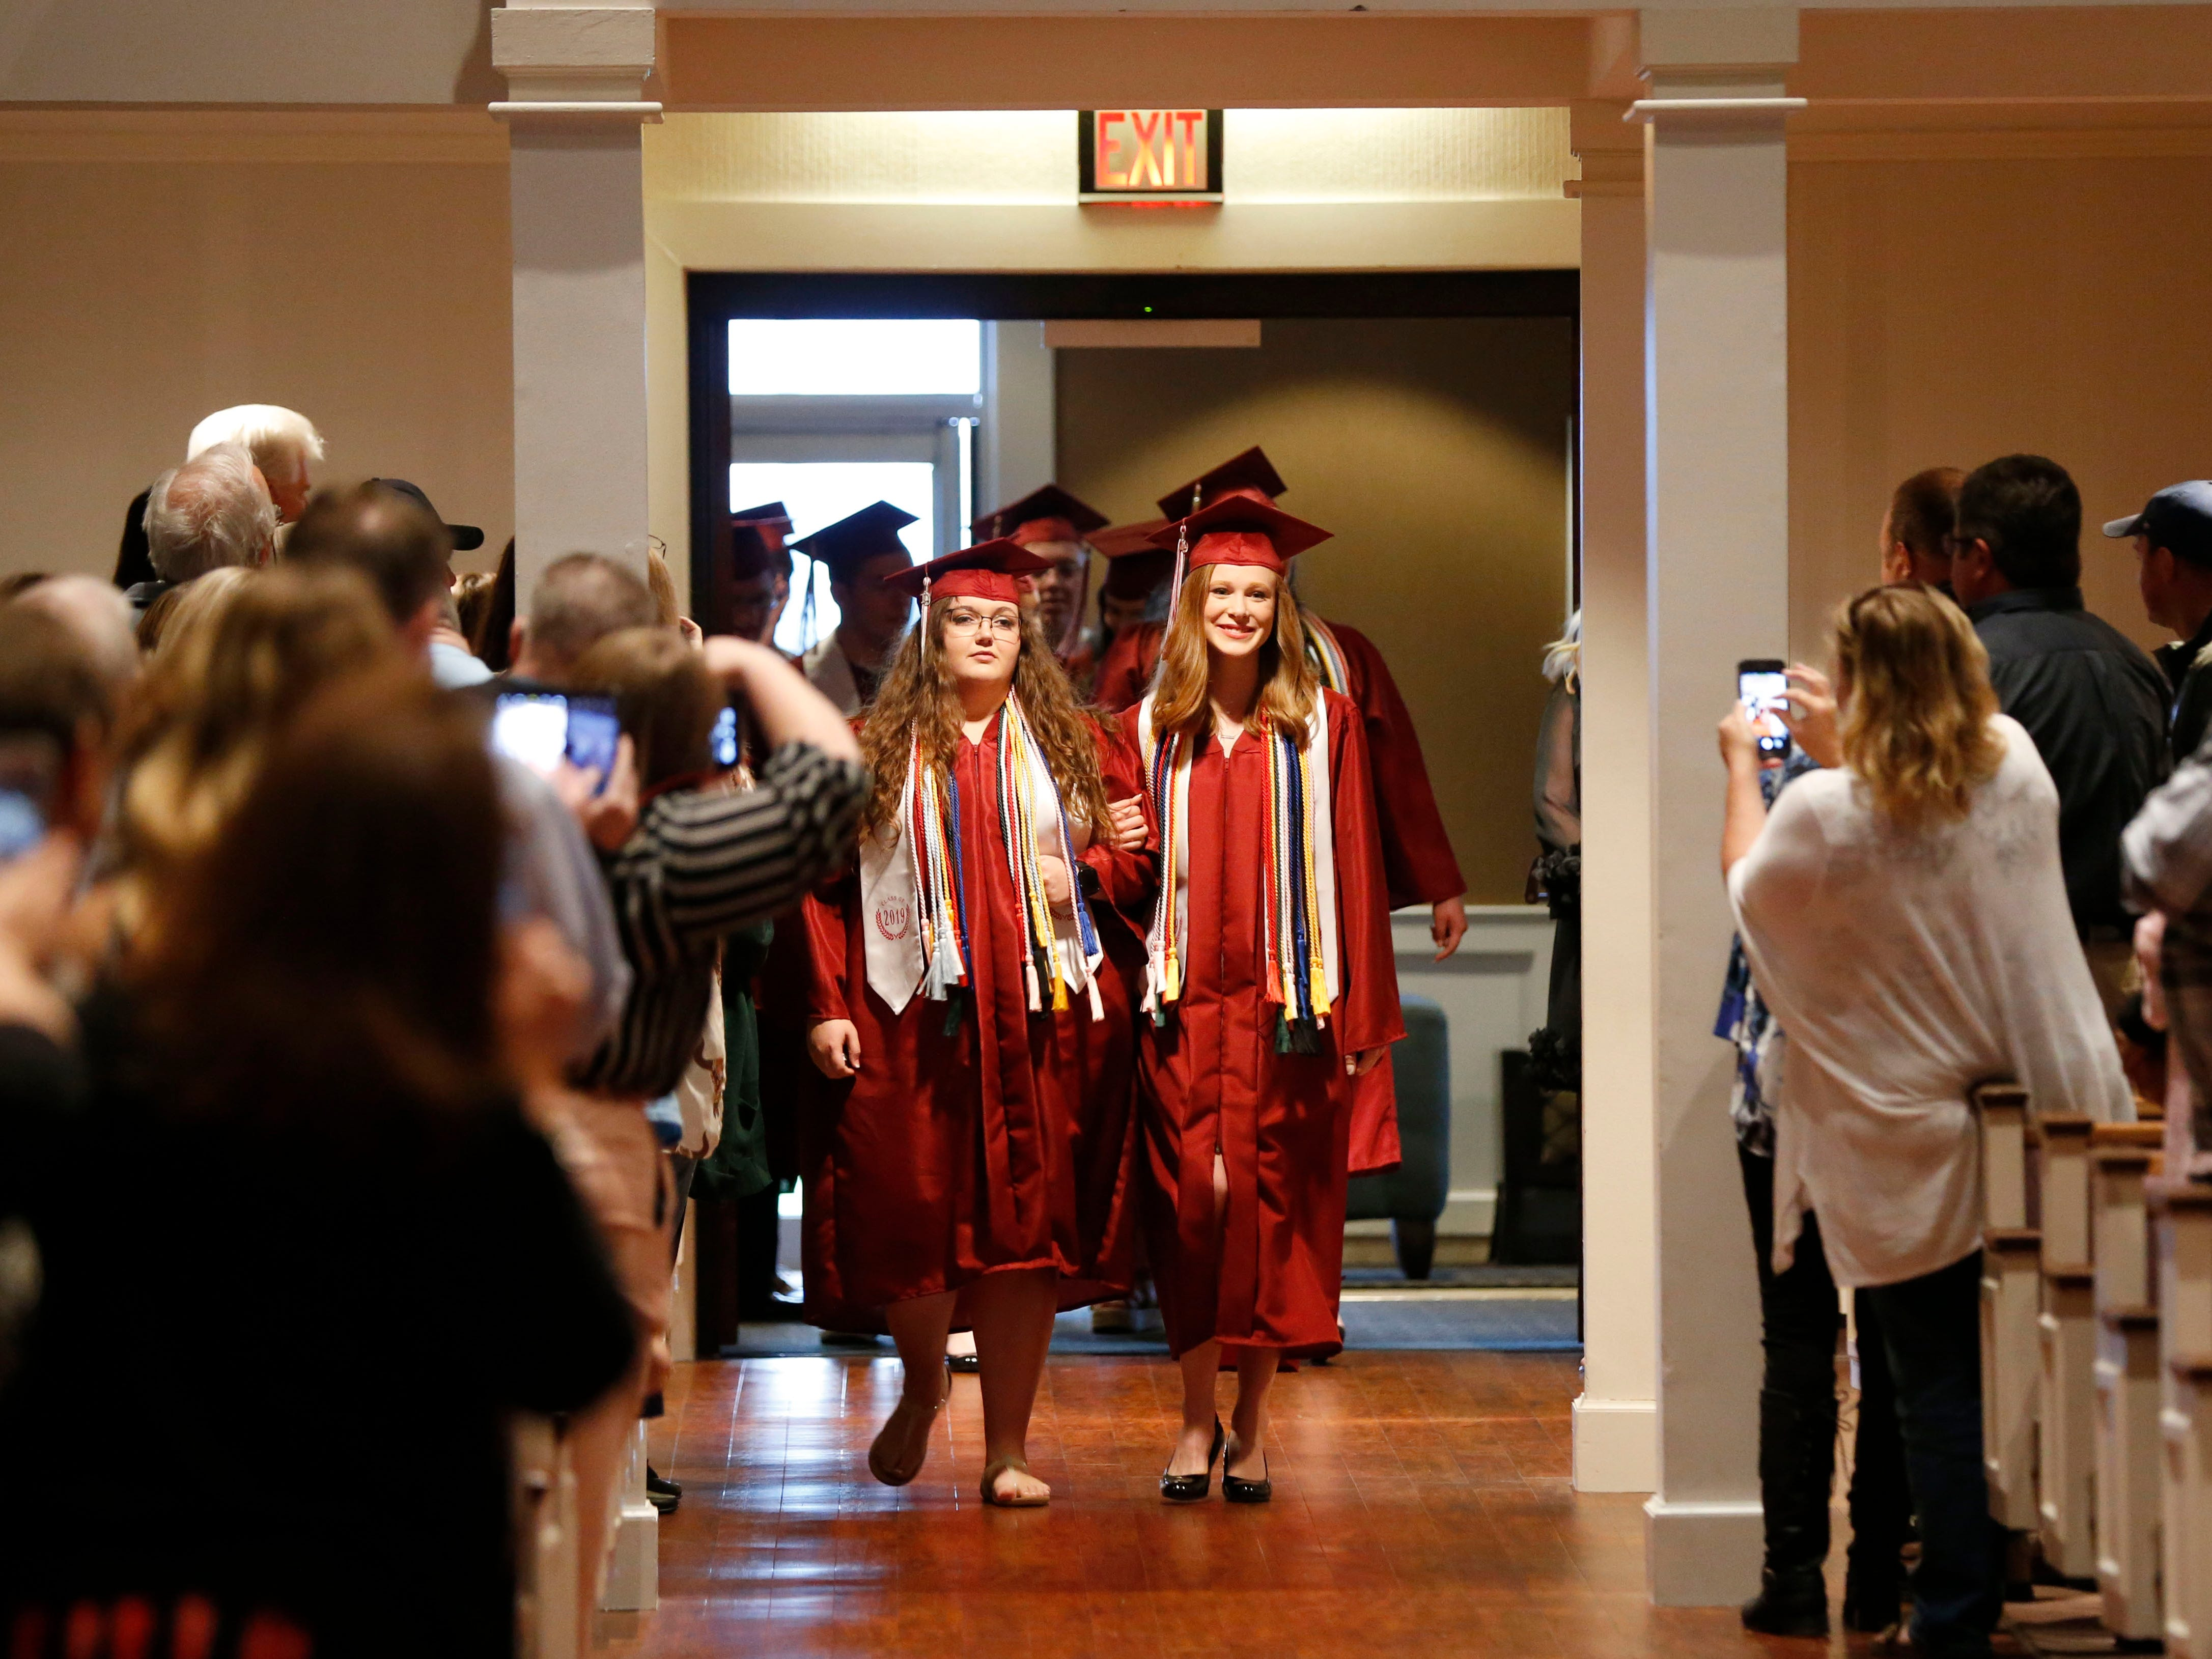 Scenes from the Strafford High School Commencement Ceremony at High Street Baptist Church on Thursday, May 9, 2019.